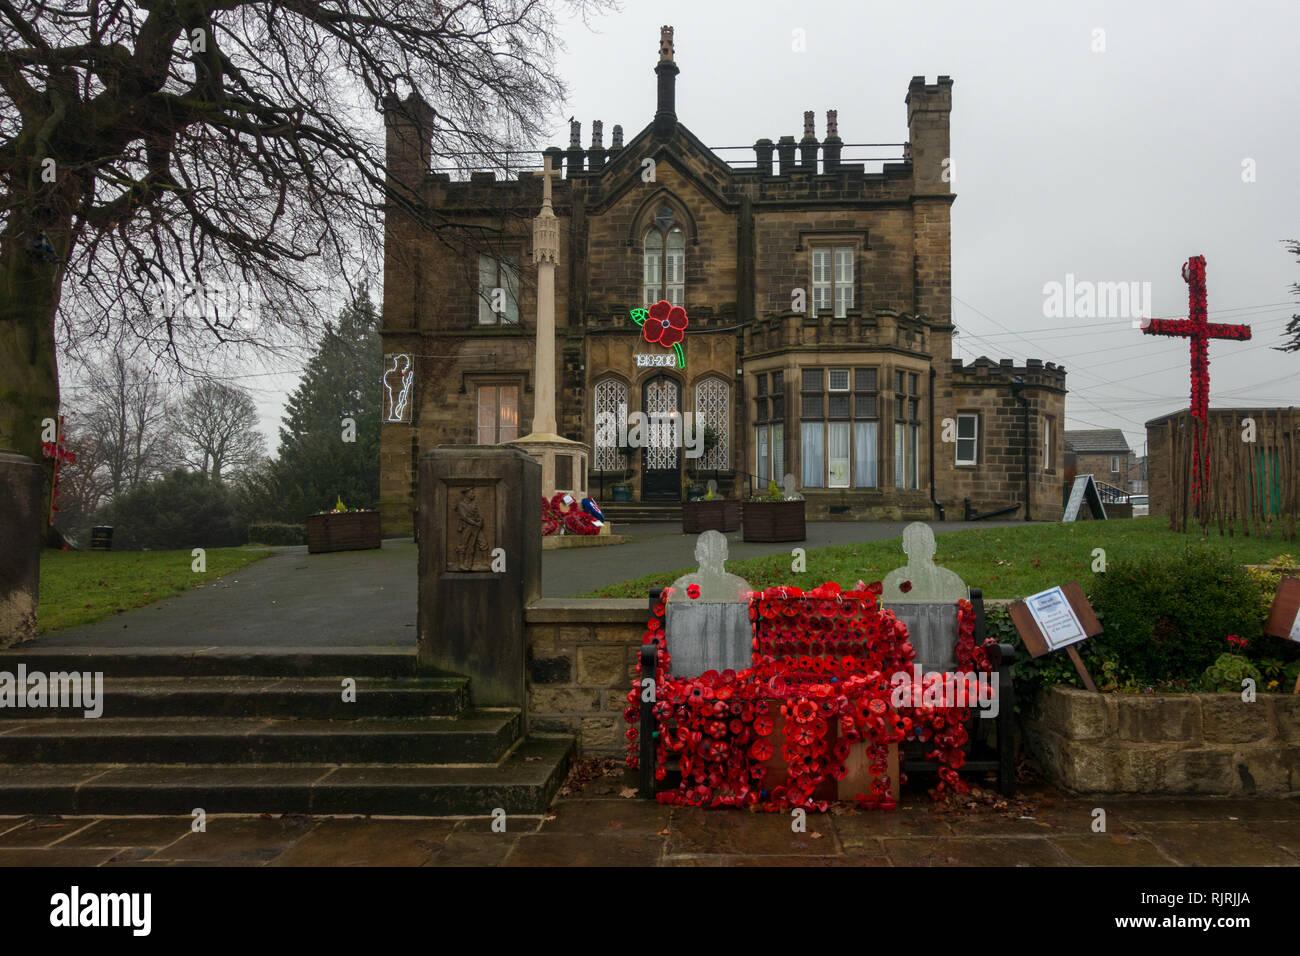 Remembrance Day display with lots of red poppies outisde The Grange,   Burley-in-Wharfedale - Stock Image